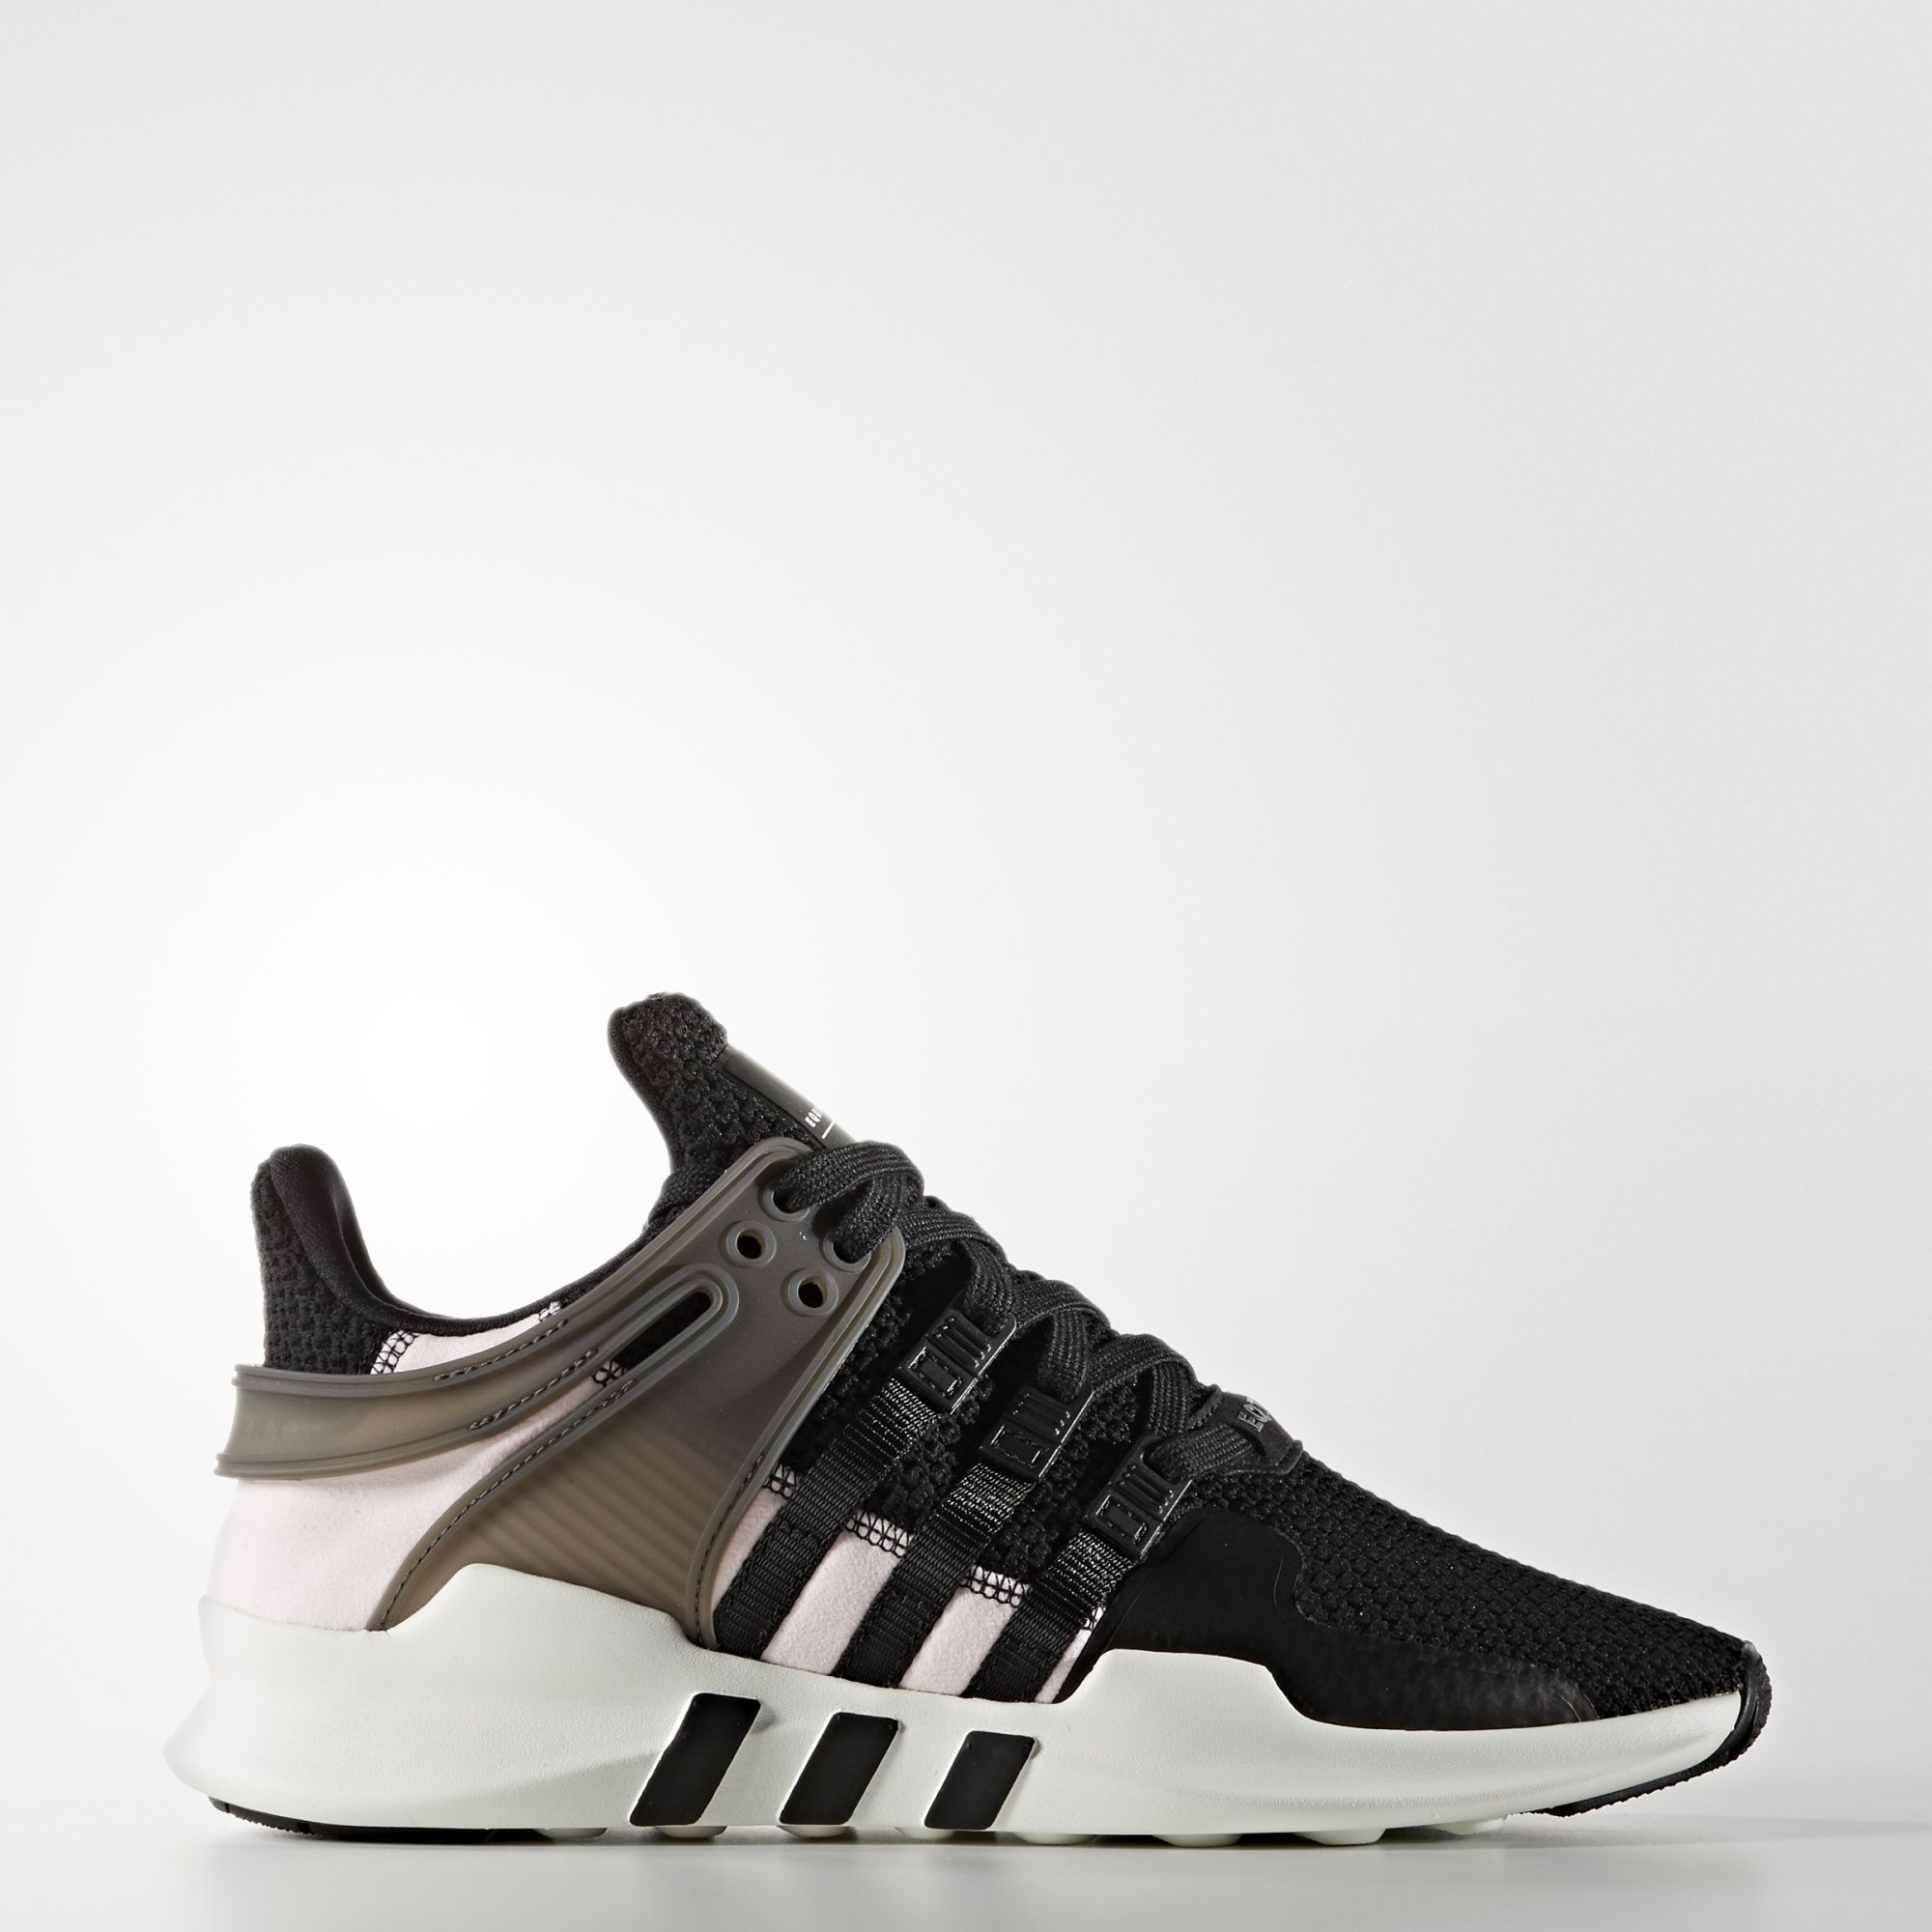 adidas shoes for women at macys adidas superstar womens black and white south africa